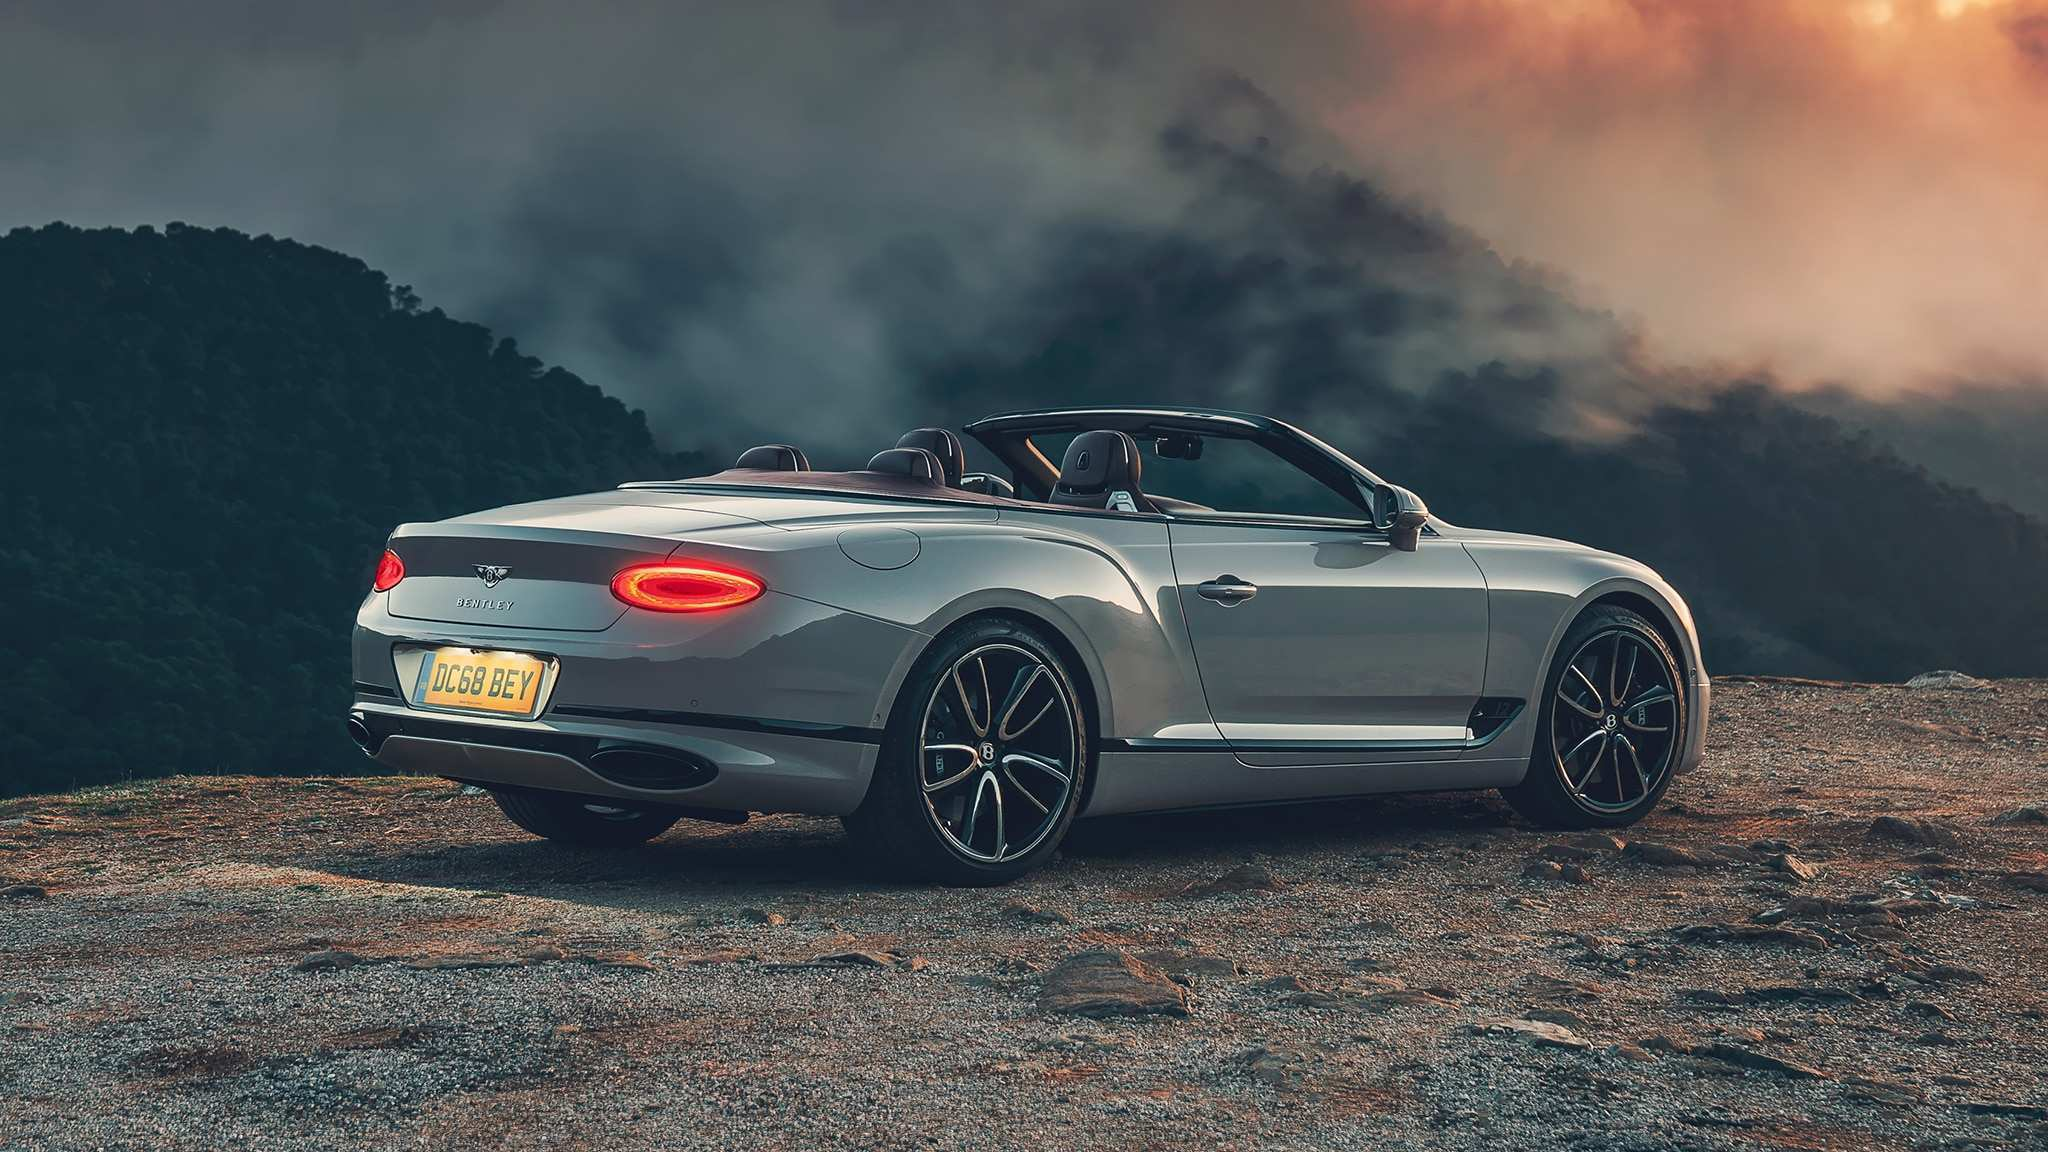 85 The 2020 Bentley Continental GT Redesign